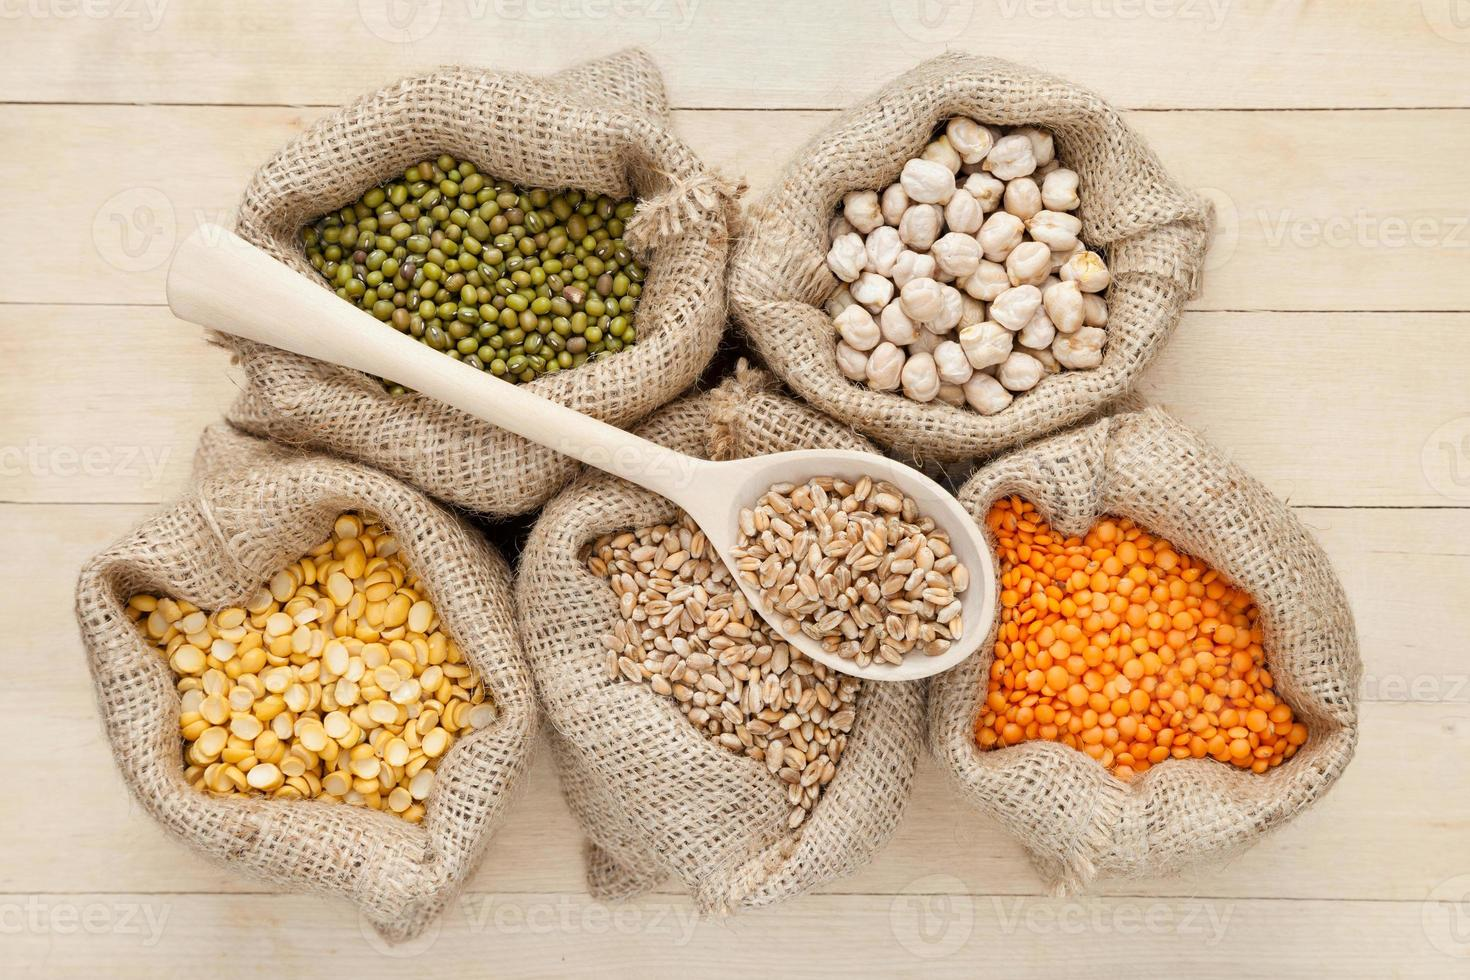 bags with red lentils, peas, wheat and green mung photo